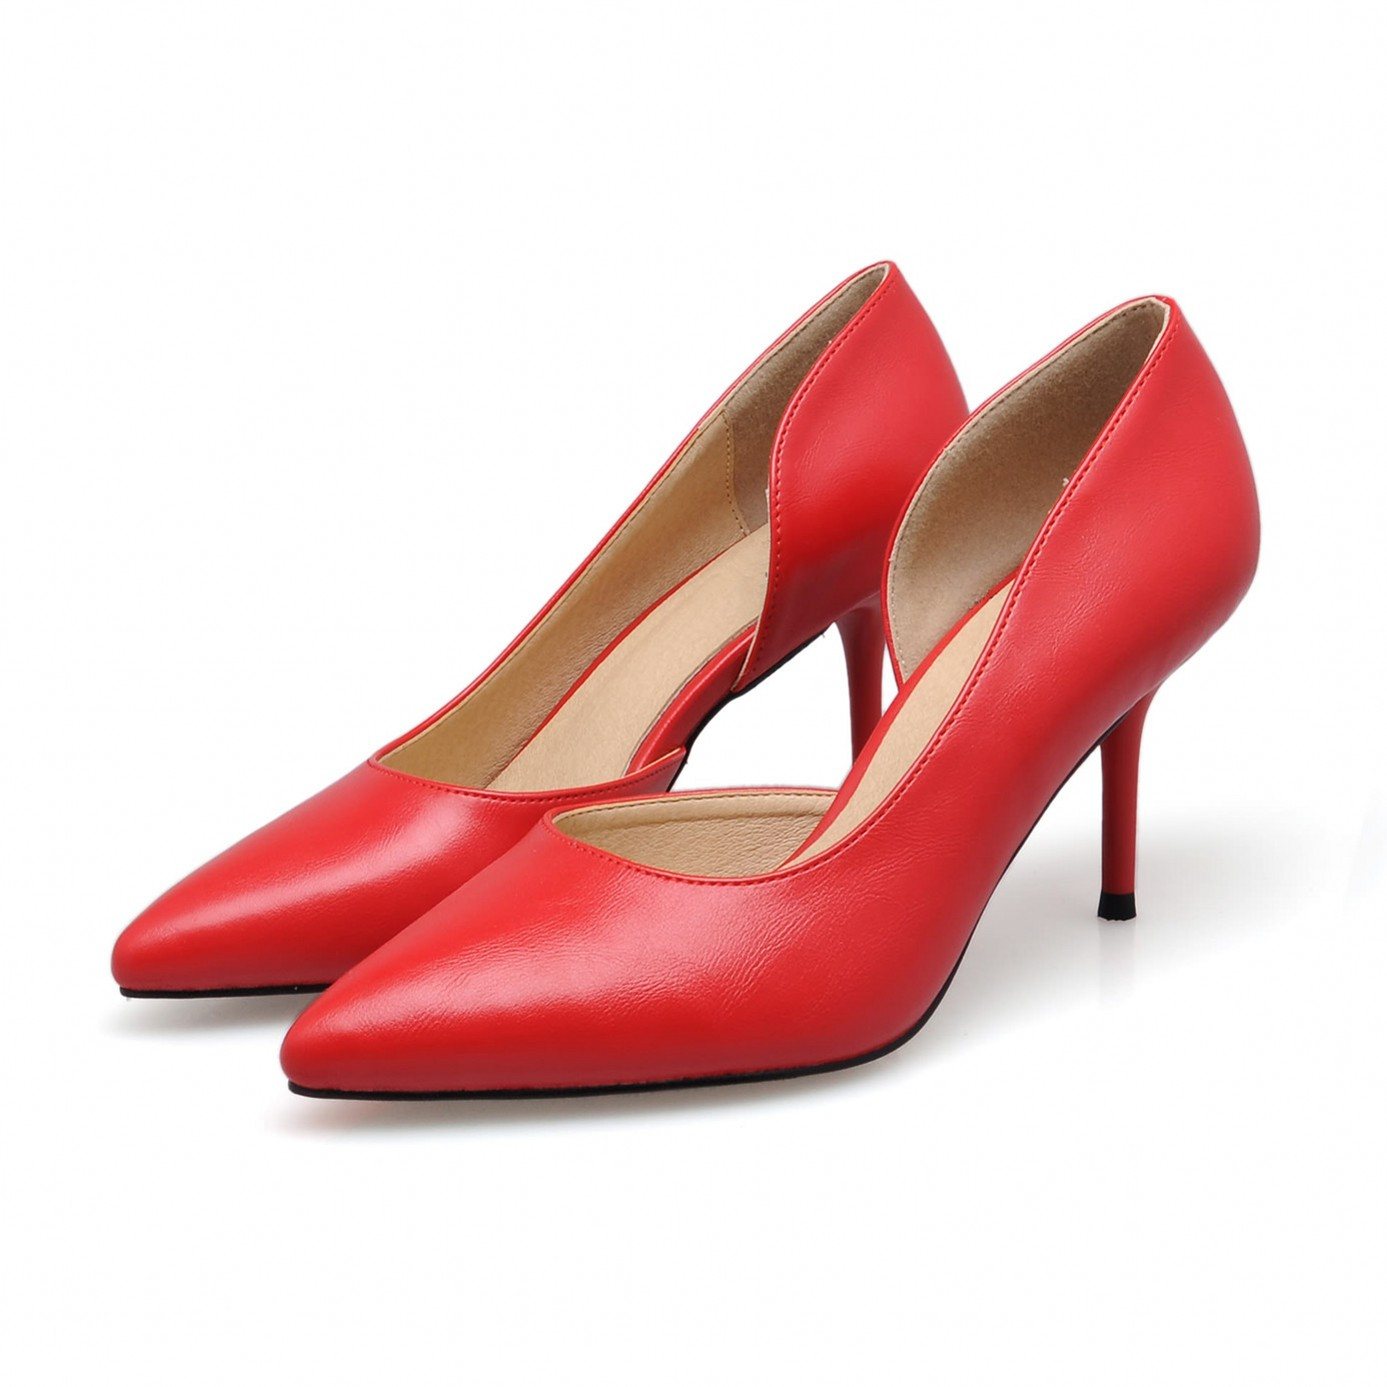 New Spring Summer Red High Heels Good Quality Pointed Toe Women Lady Solid Simple Casual Genuine Leather Pumps Shoes SMYBK-46 new 2016 spring autumn summer fashion casual flat with shoes breathable pointed toe solid high quality shoes plus size 36 40